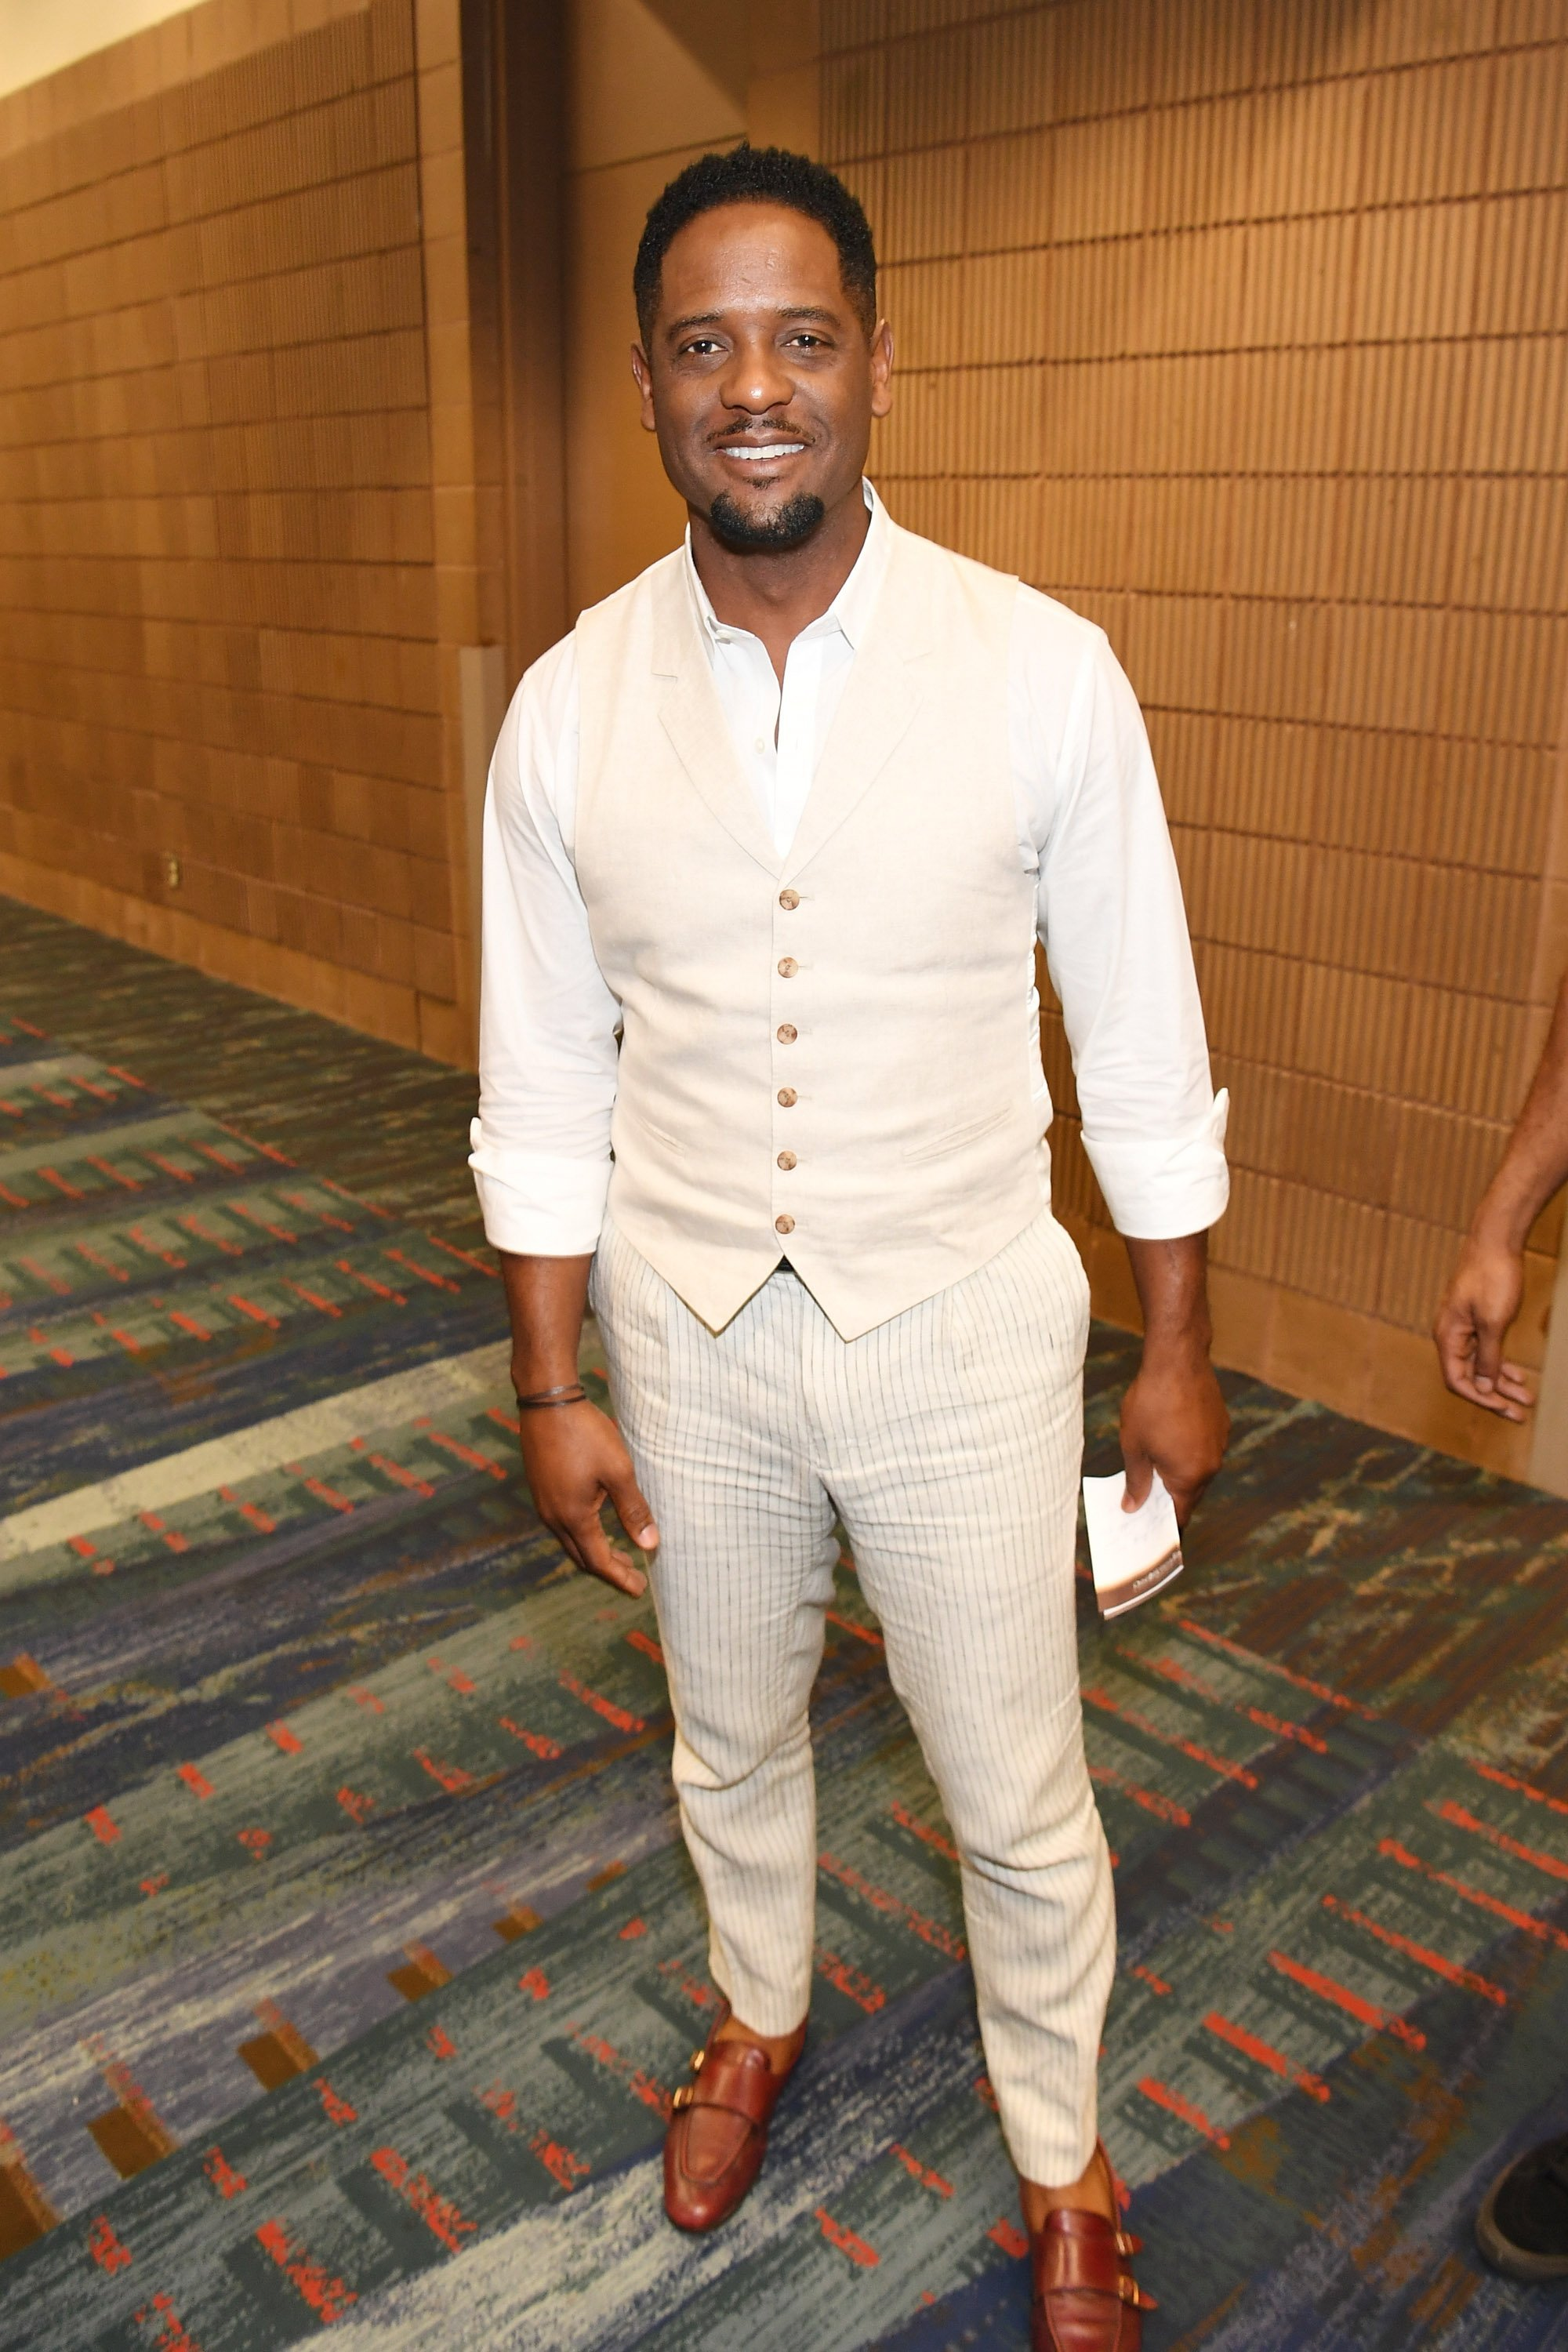 Blair Underwood at the ESSENCE Festival on July 2, 2017 in Louisiana | Photo: Getty Images